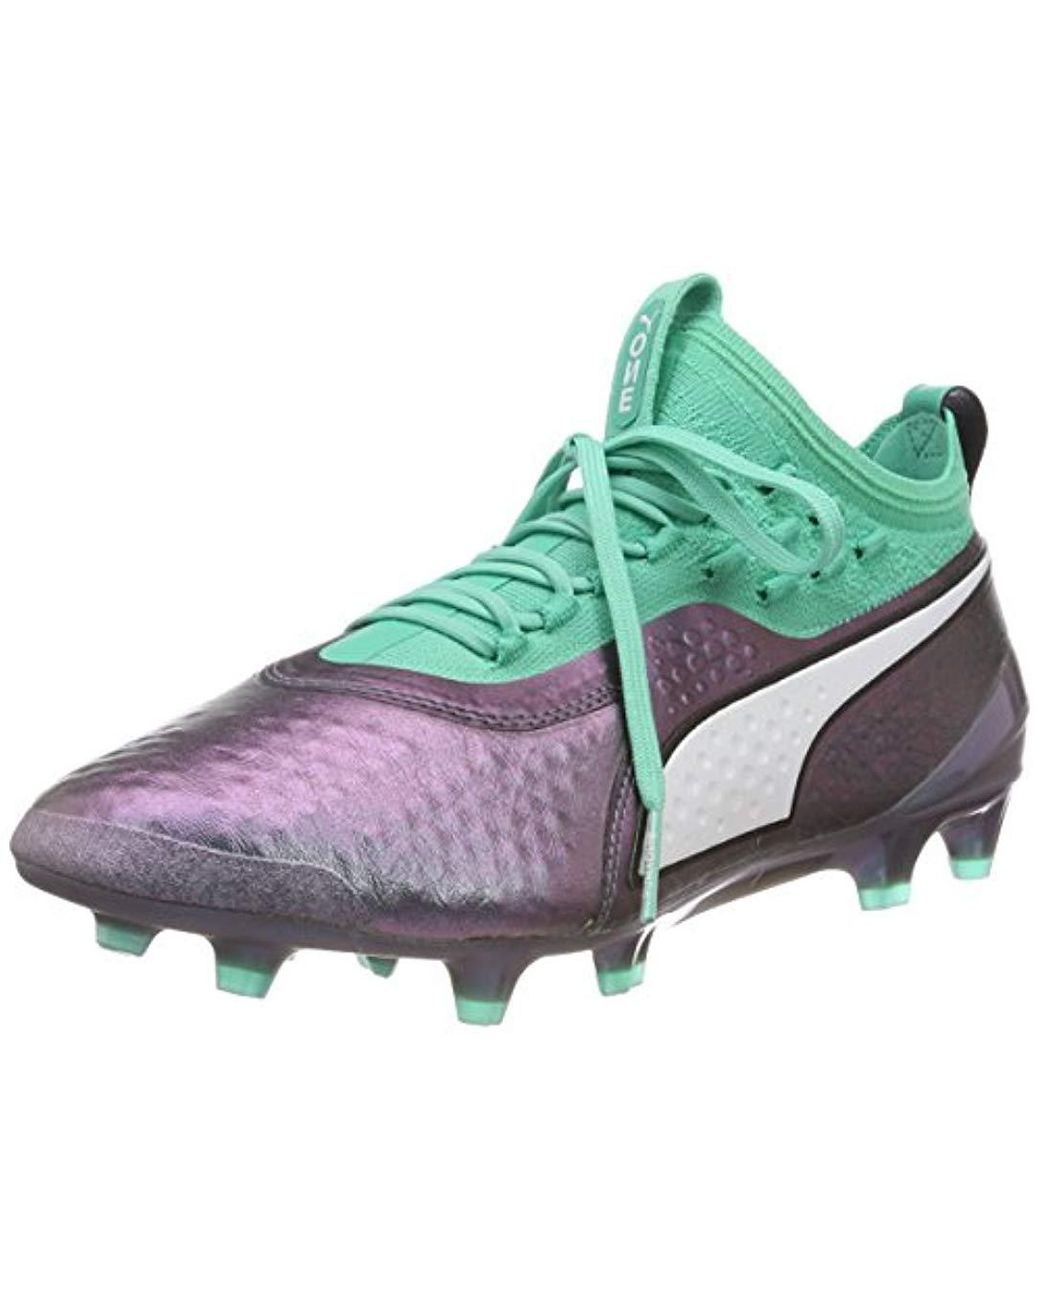 PUMA Leather One 1 Il Lth Fgag Footbal Shoes in Green for